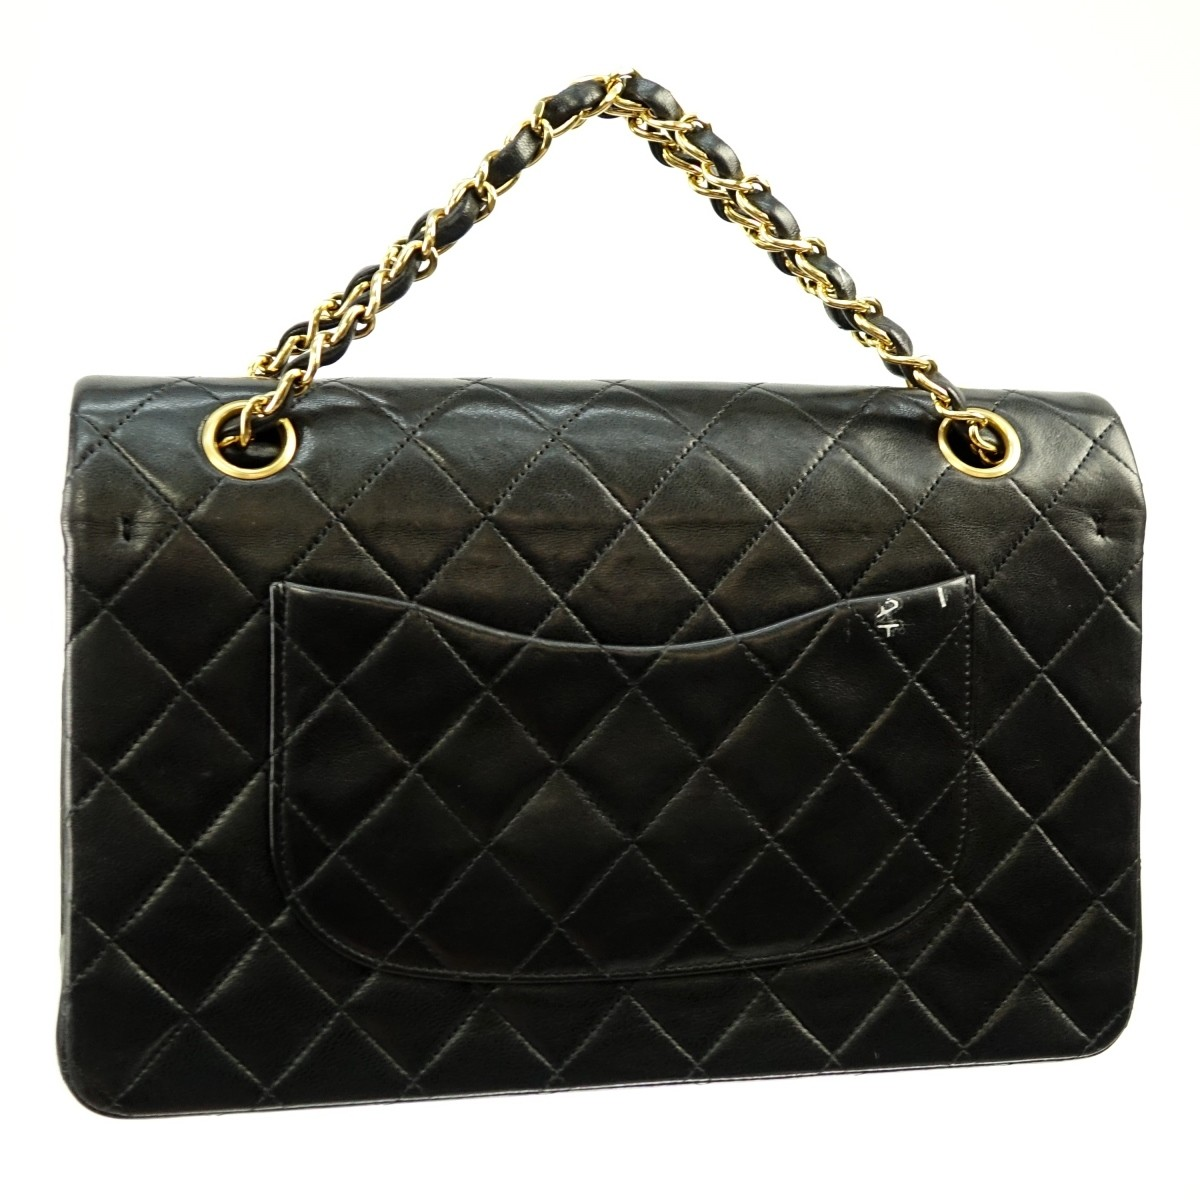 Chanel Black Quilted Leather Double Flap Bag 26